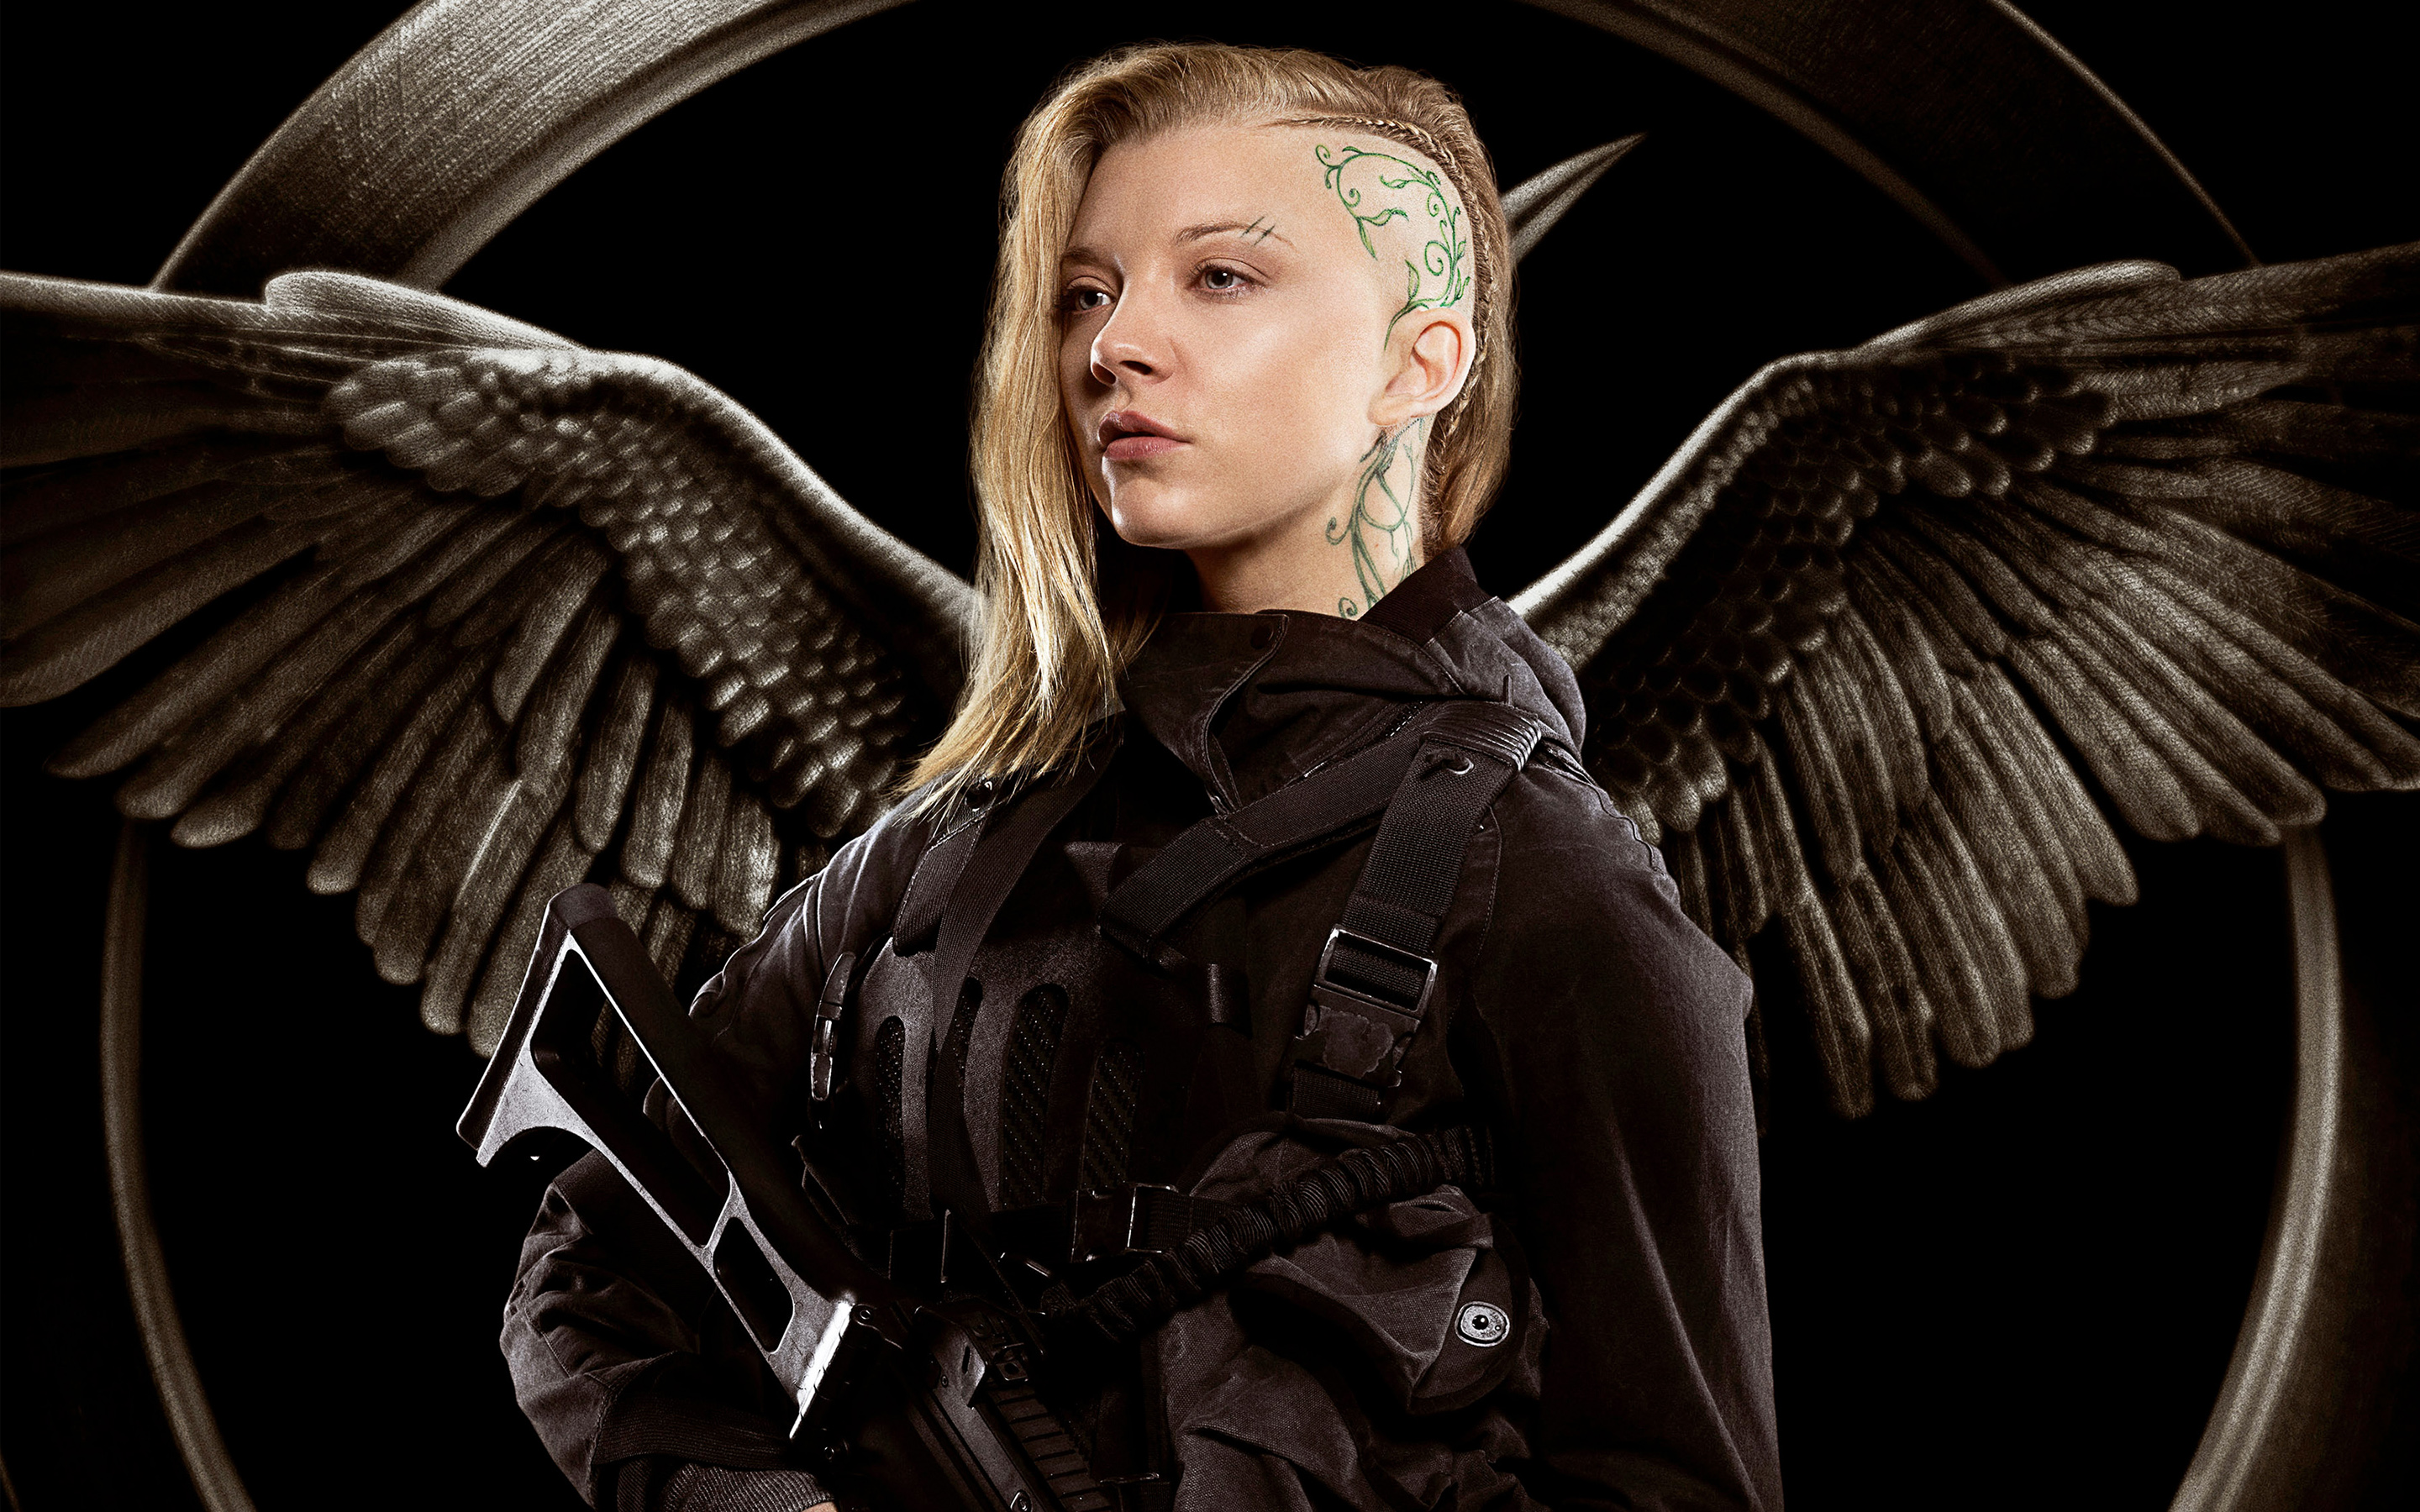 Natalie Dormer as Cressida 596.38 Kb